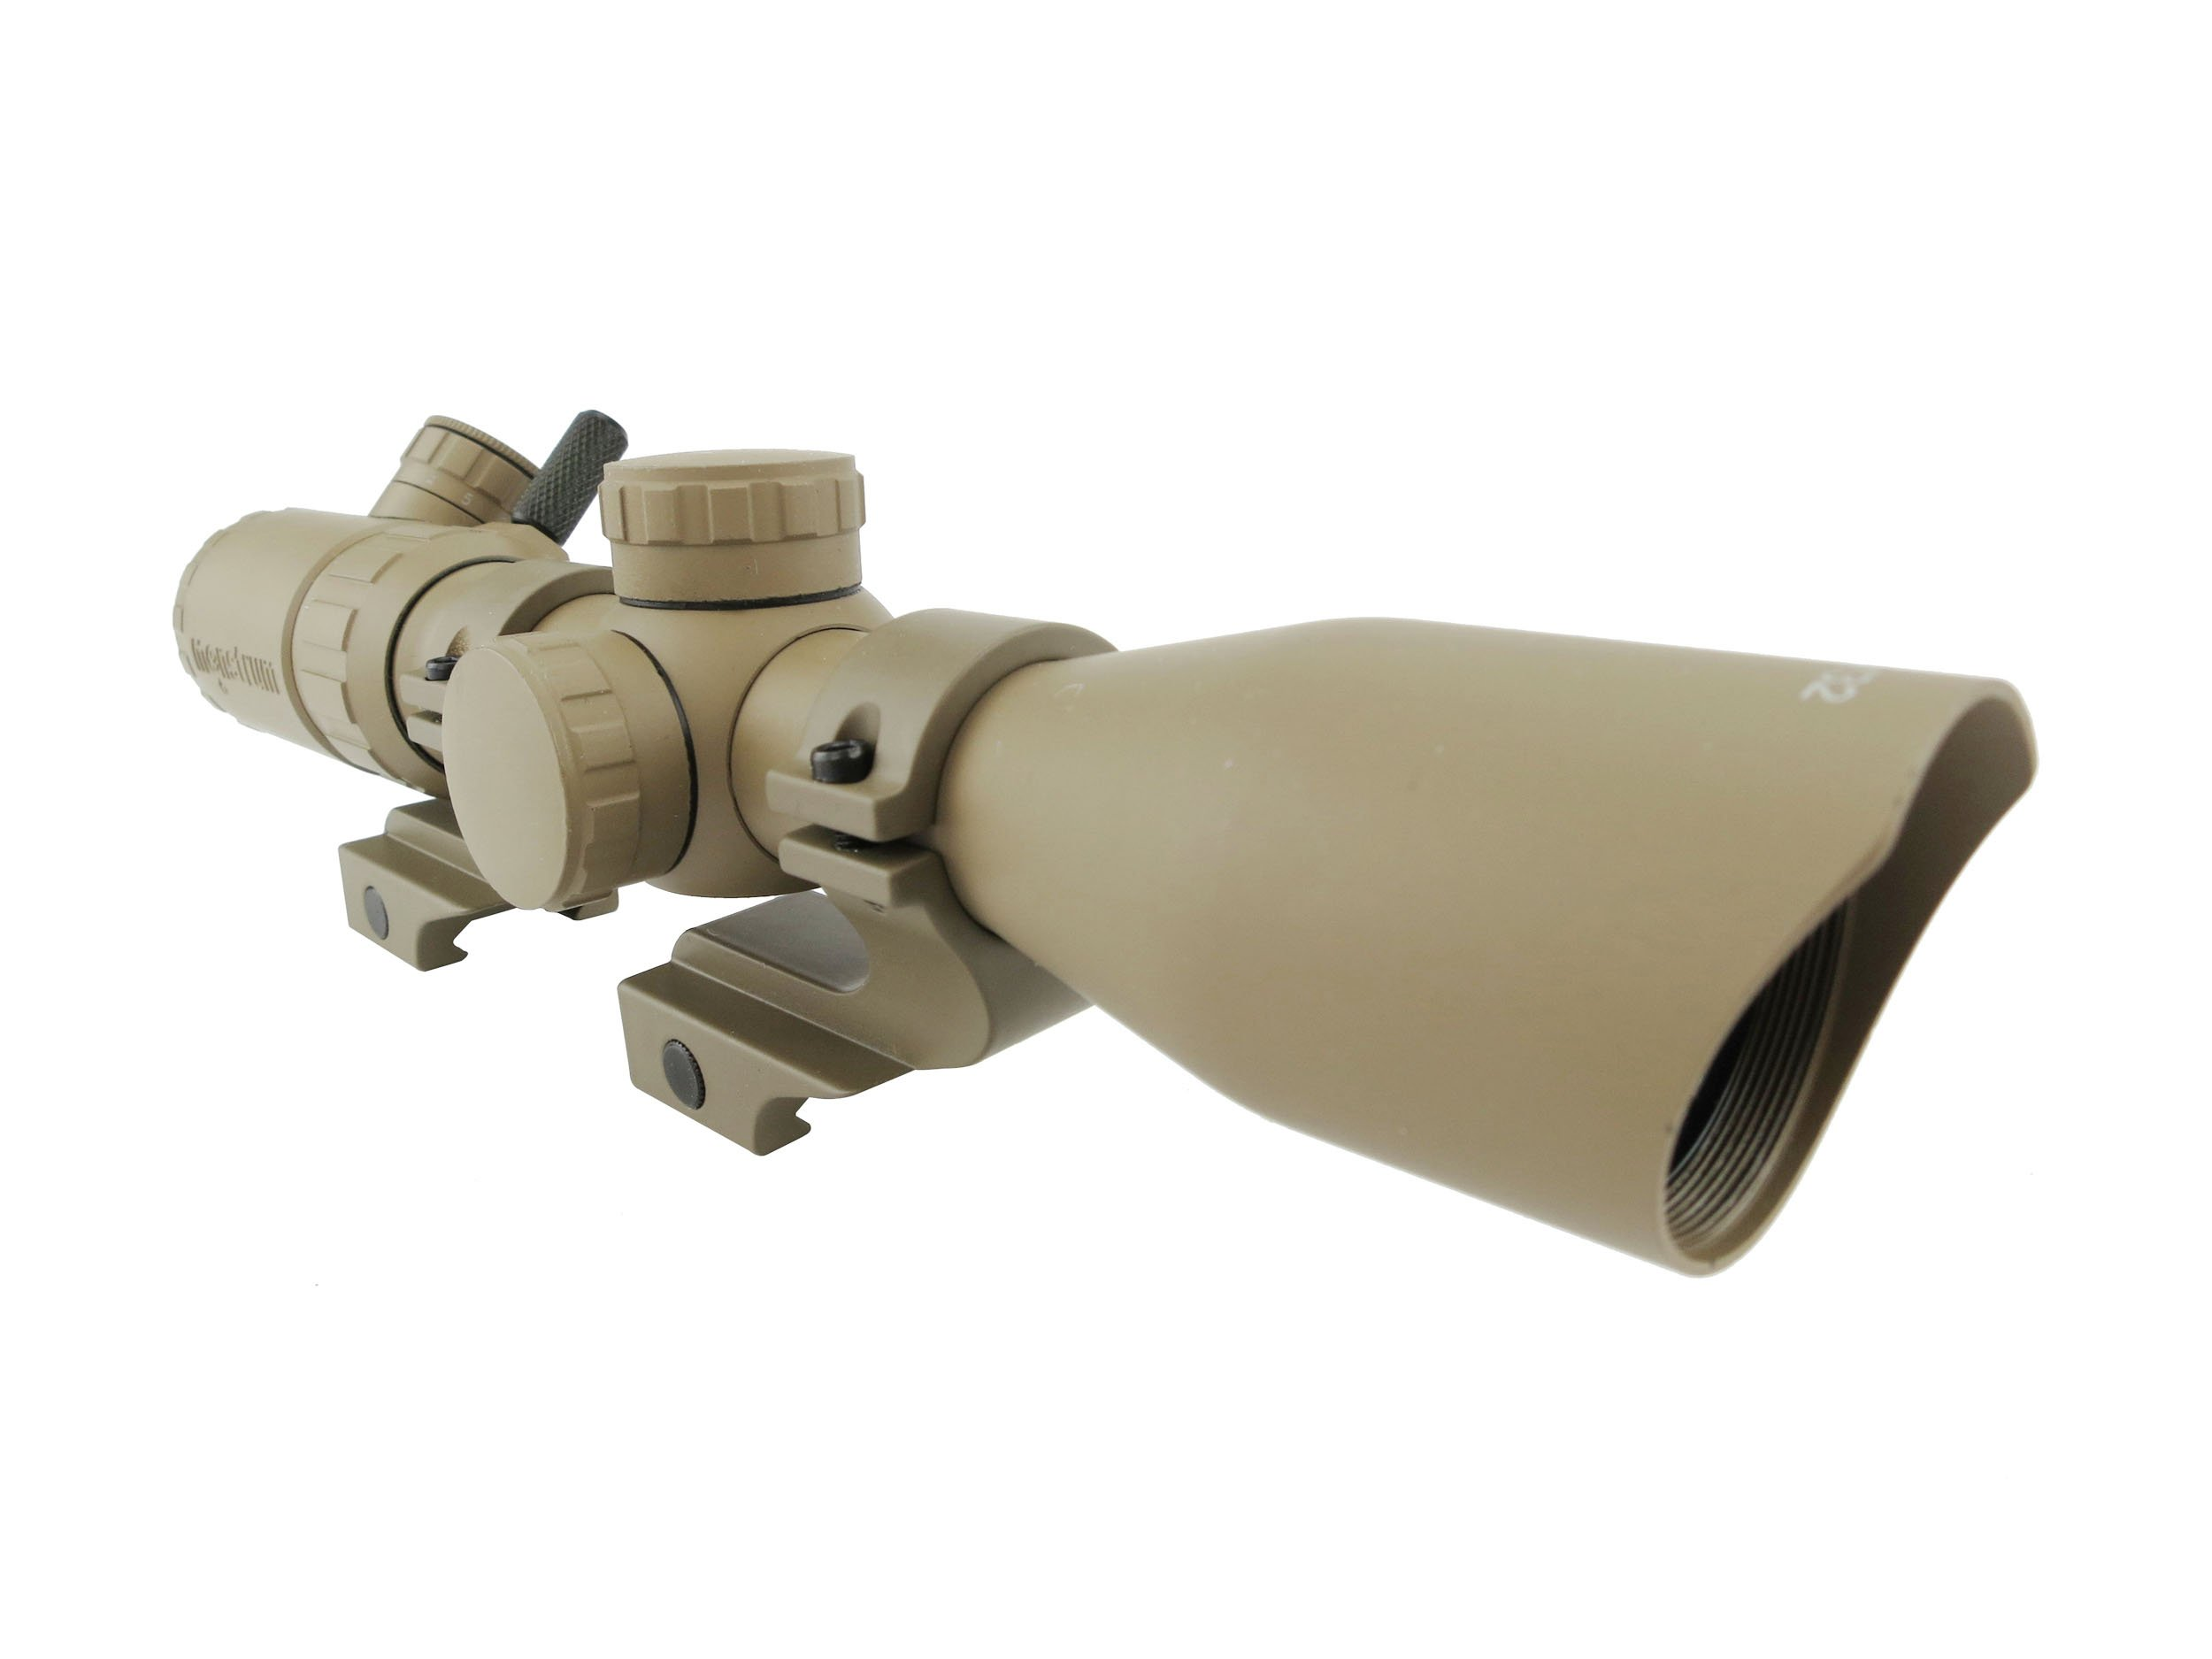 Monstrum 3-9x32 Rifle Scope with Rangefinder Reticle and Offset Reversible Scope Rings | Flat Dark Earth by Monstrum